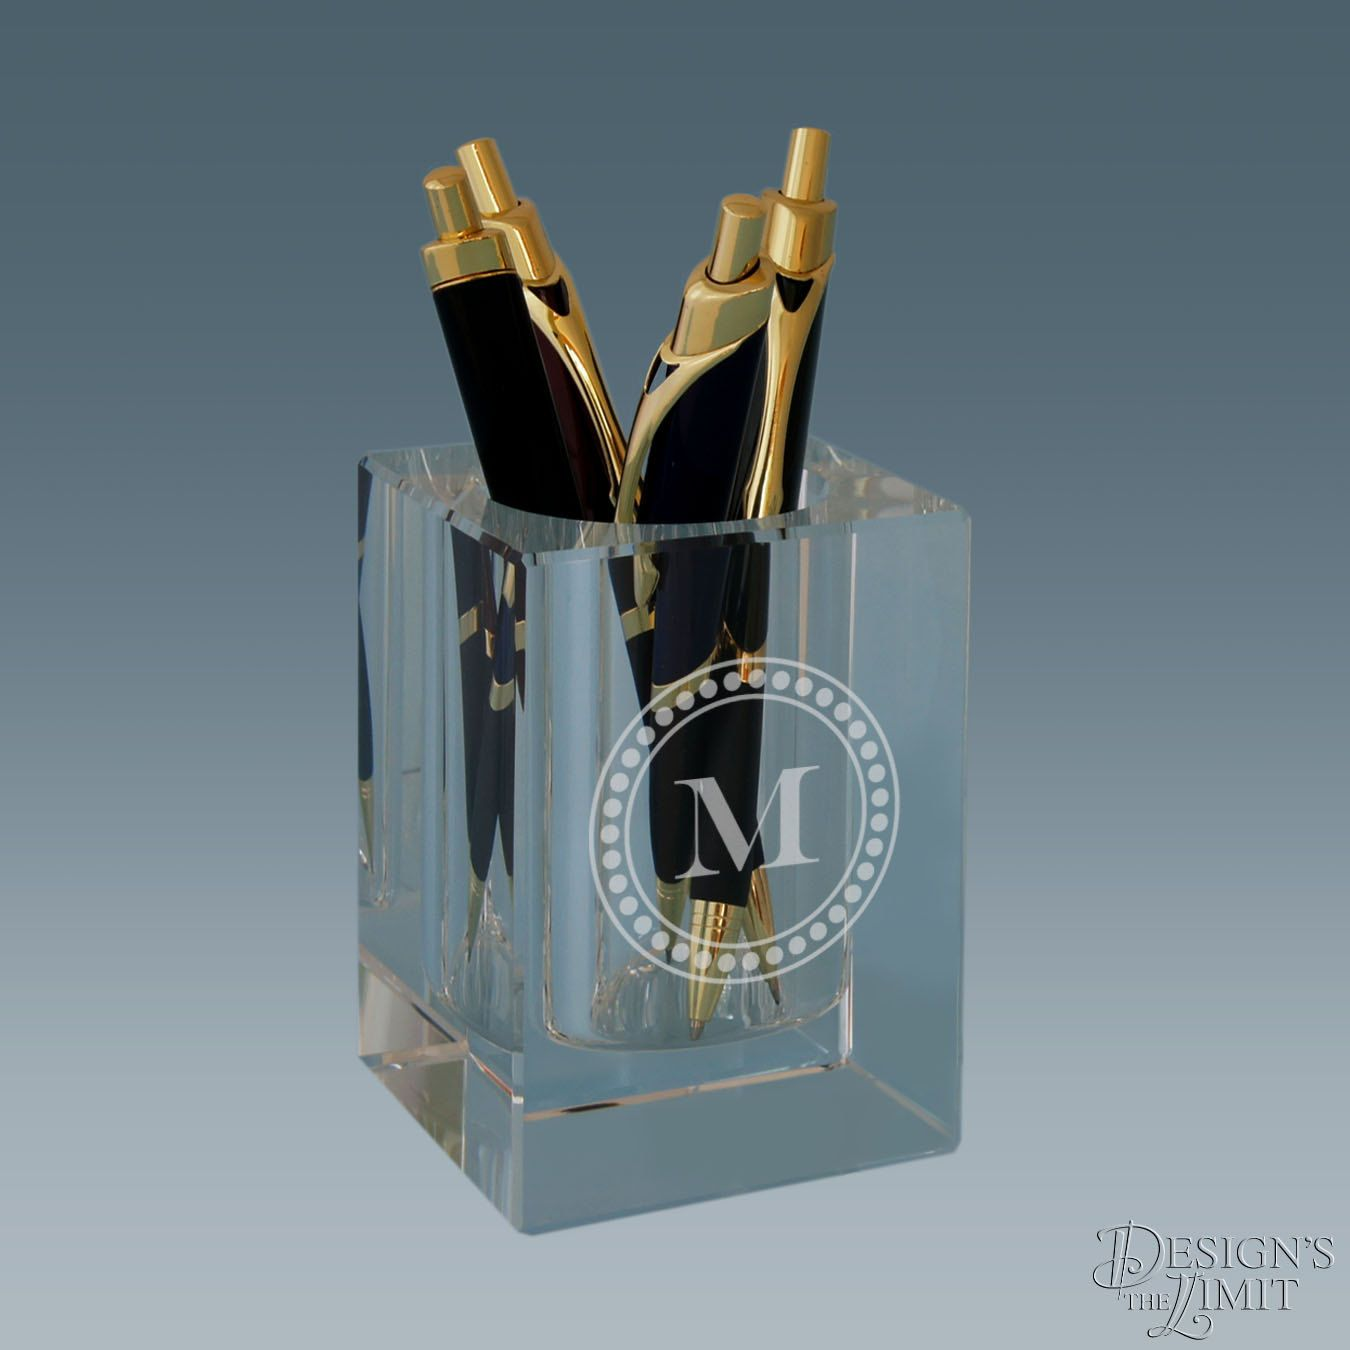 Pen Holder Design Personalized Crystal Pen And Pencil Holder Engraved With